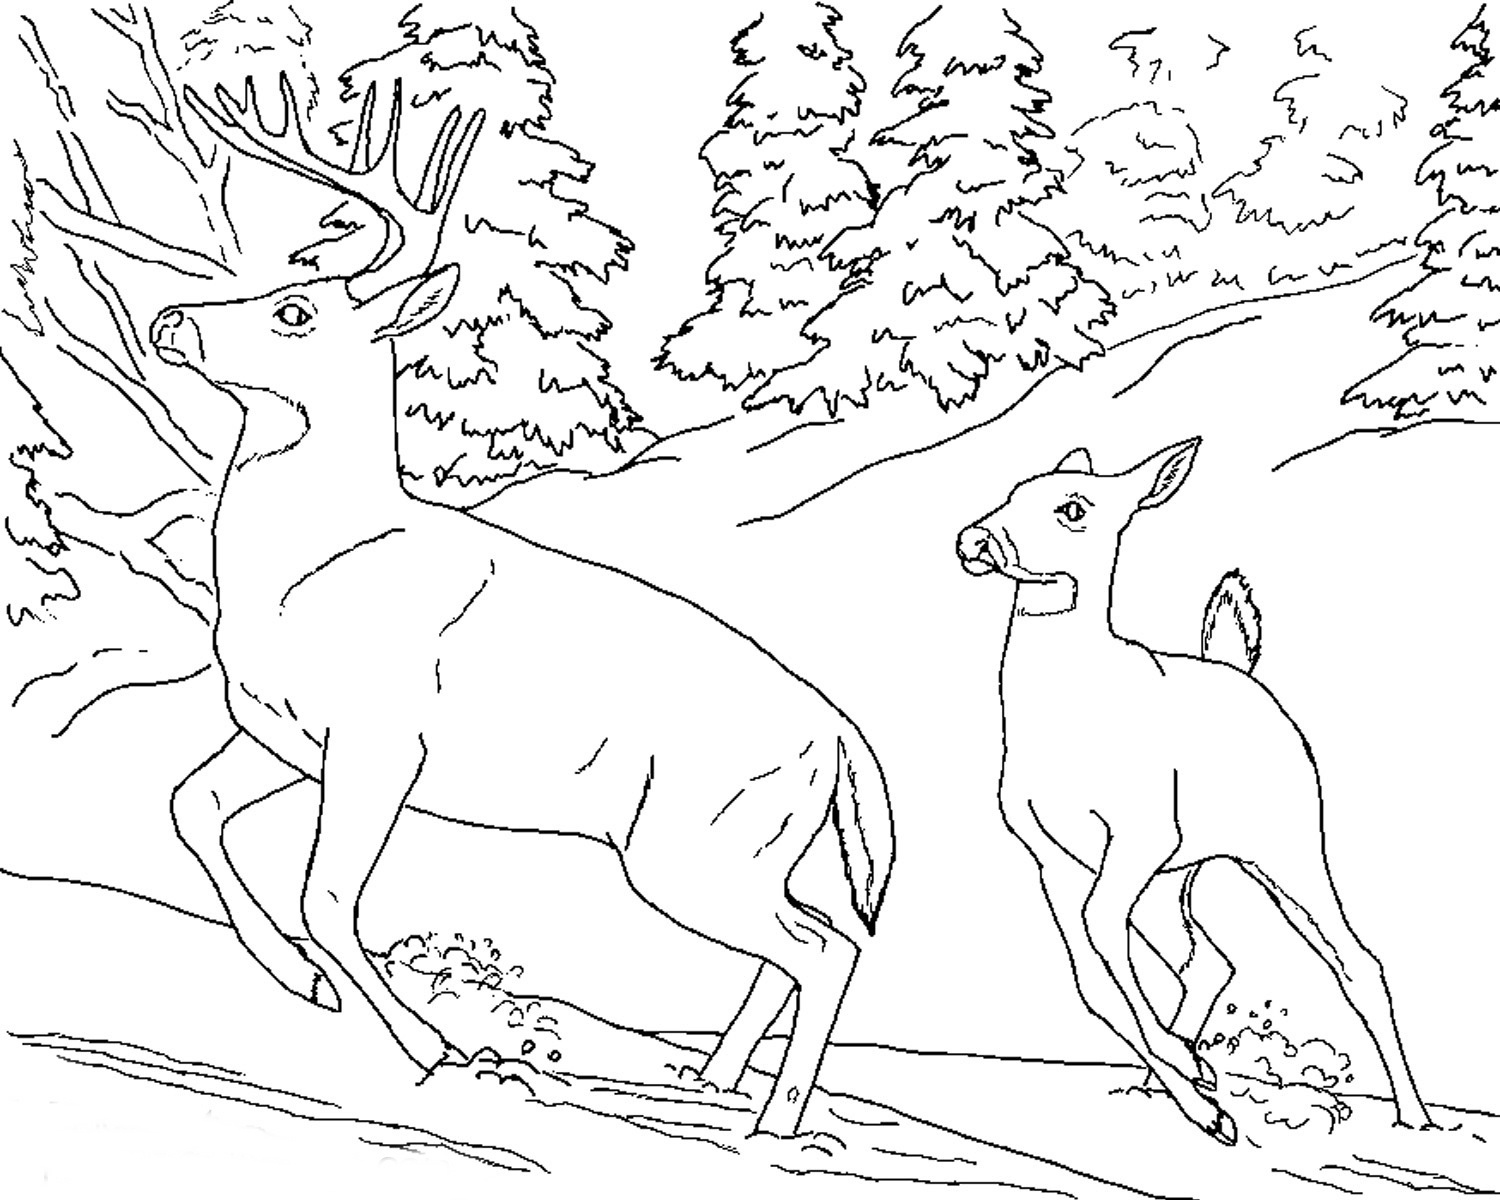 Free Realistic Animal Coloring Pages | Realistic Animal Coloring - Free Printable Realistic Animal Coloring Pages